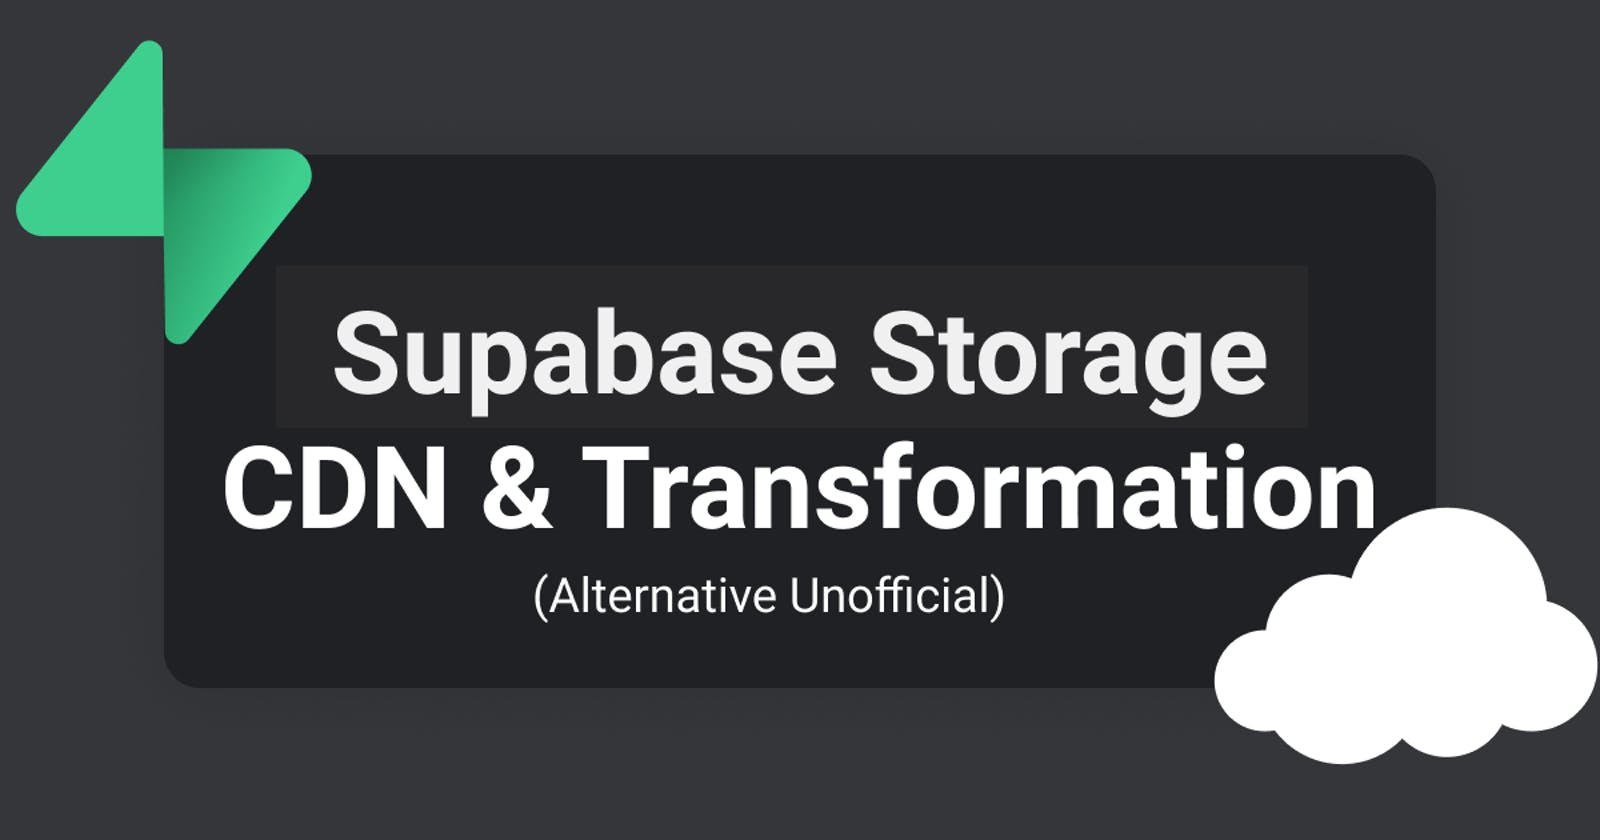 Supabase Storage CDN and Transformation with Serverless function (Unofficial)